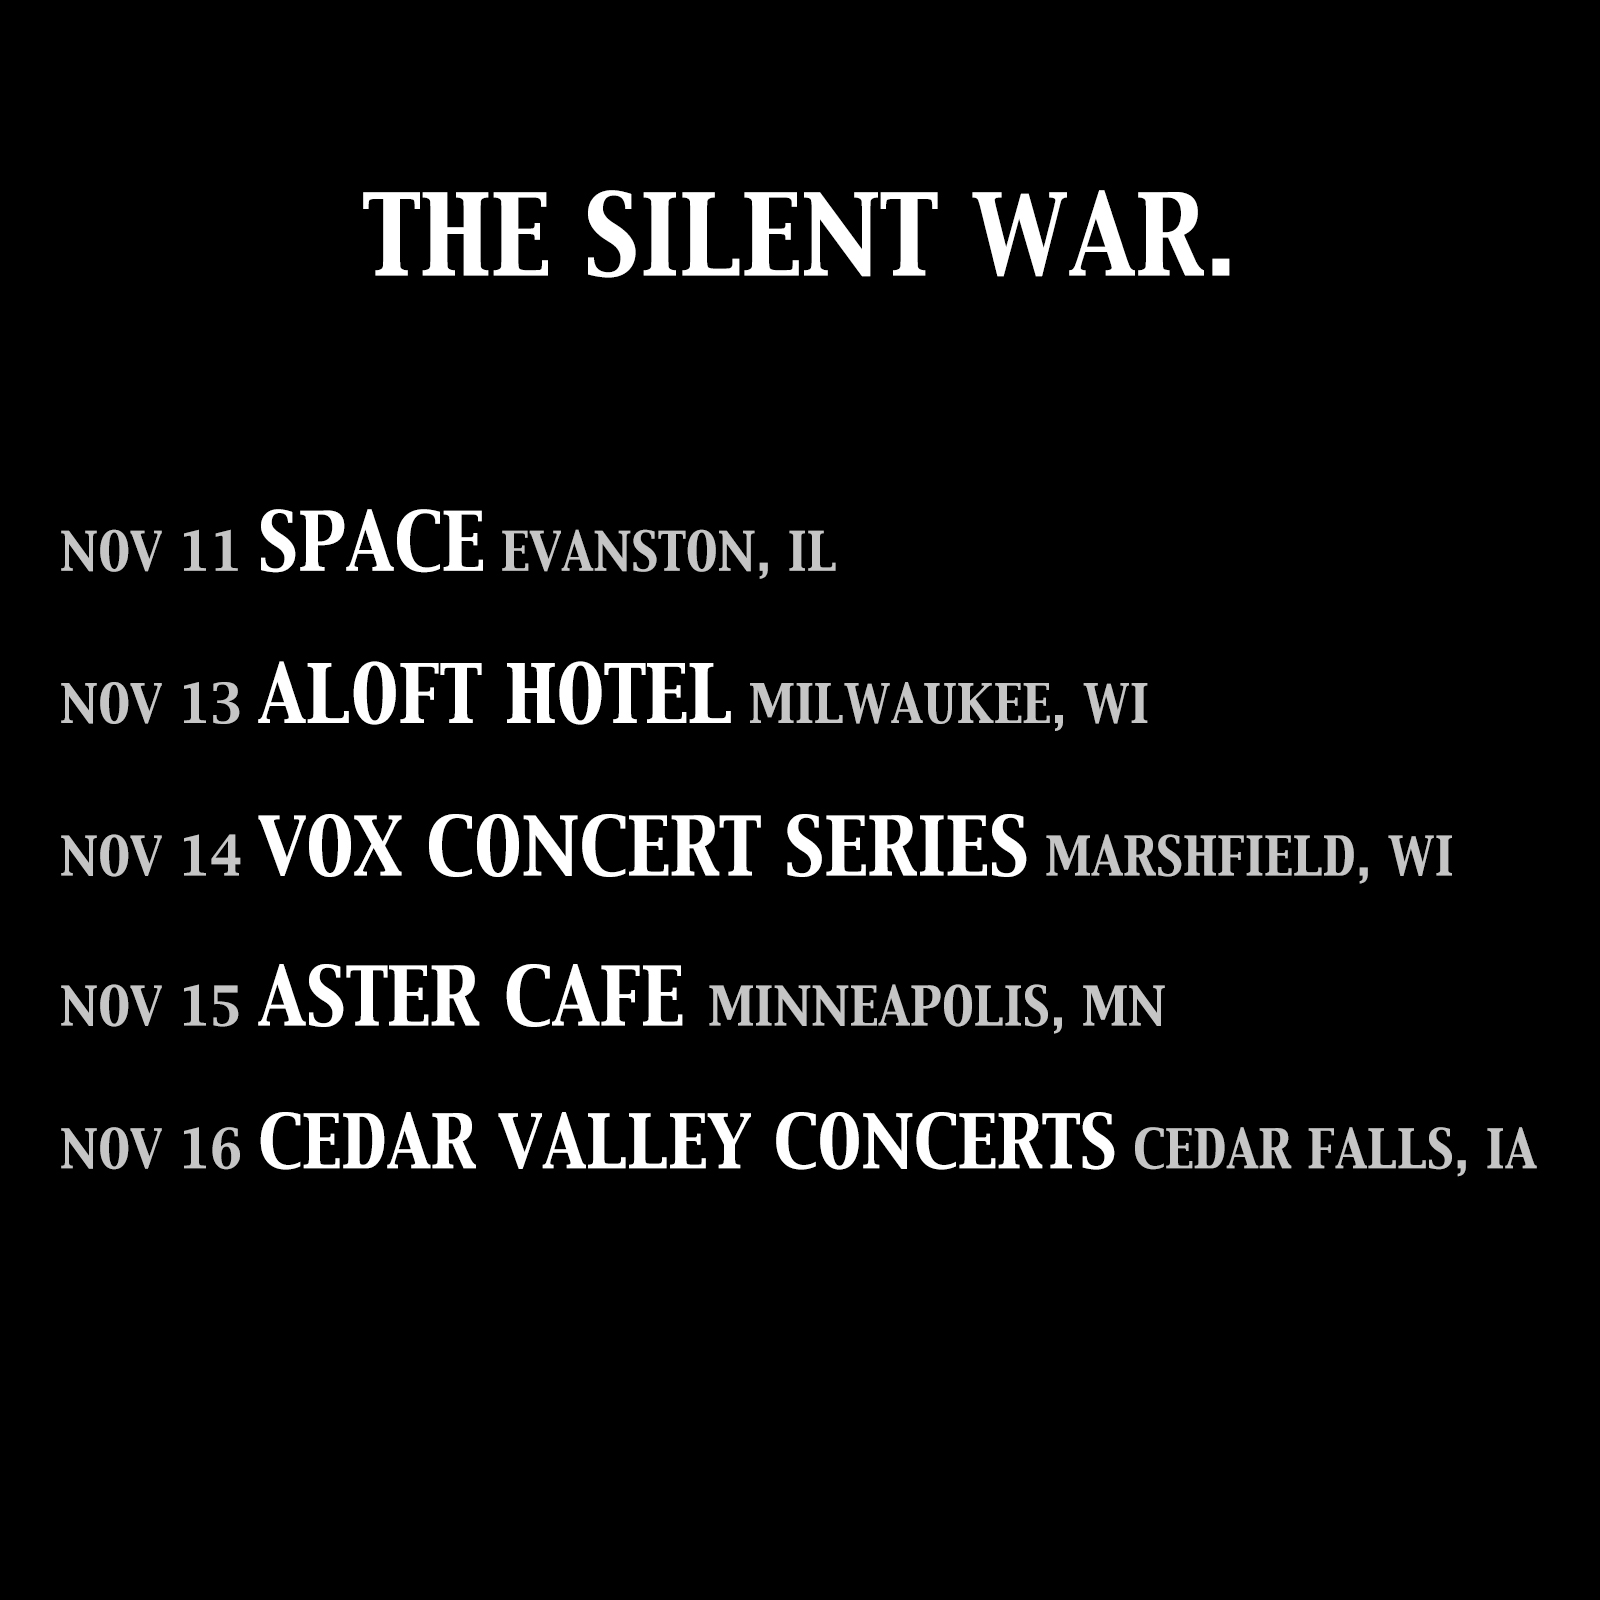 The Silent War - Tour with Matthew Mayfield